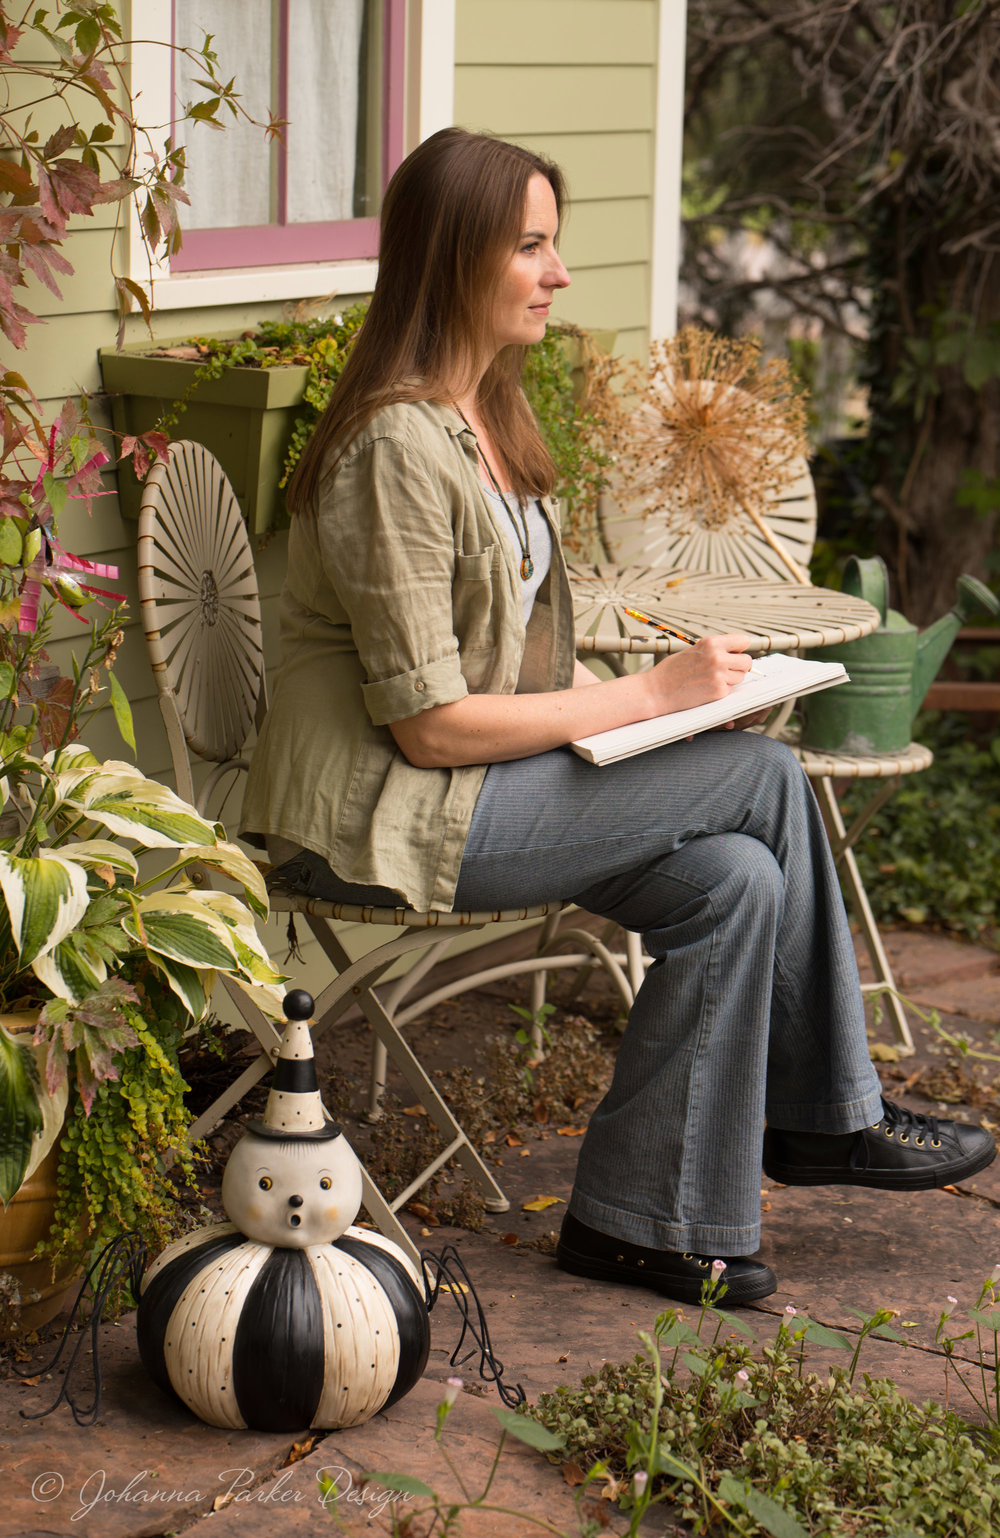 Me again at a little backyard garden table, staring off into imaginary land like I often do... Giant spider in tow....This feature was so last minute, I didn't have time to iron my clothes. Bad weather was rolling in, and we just had to wing it... I rarely iron anyway....  :D